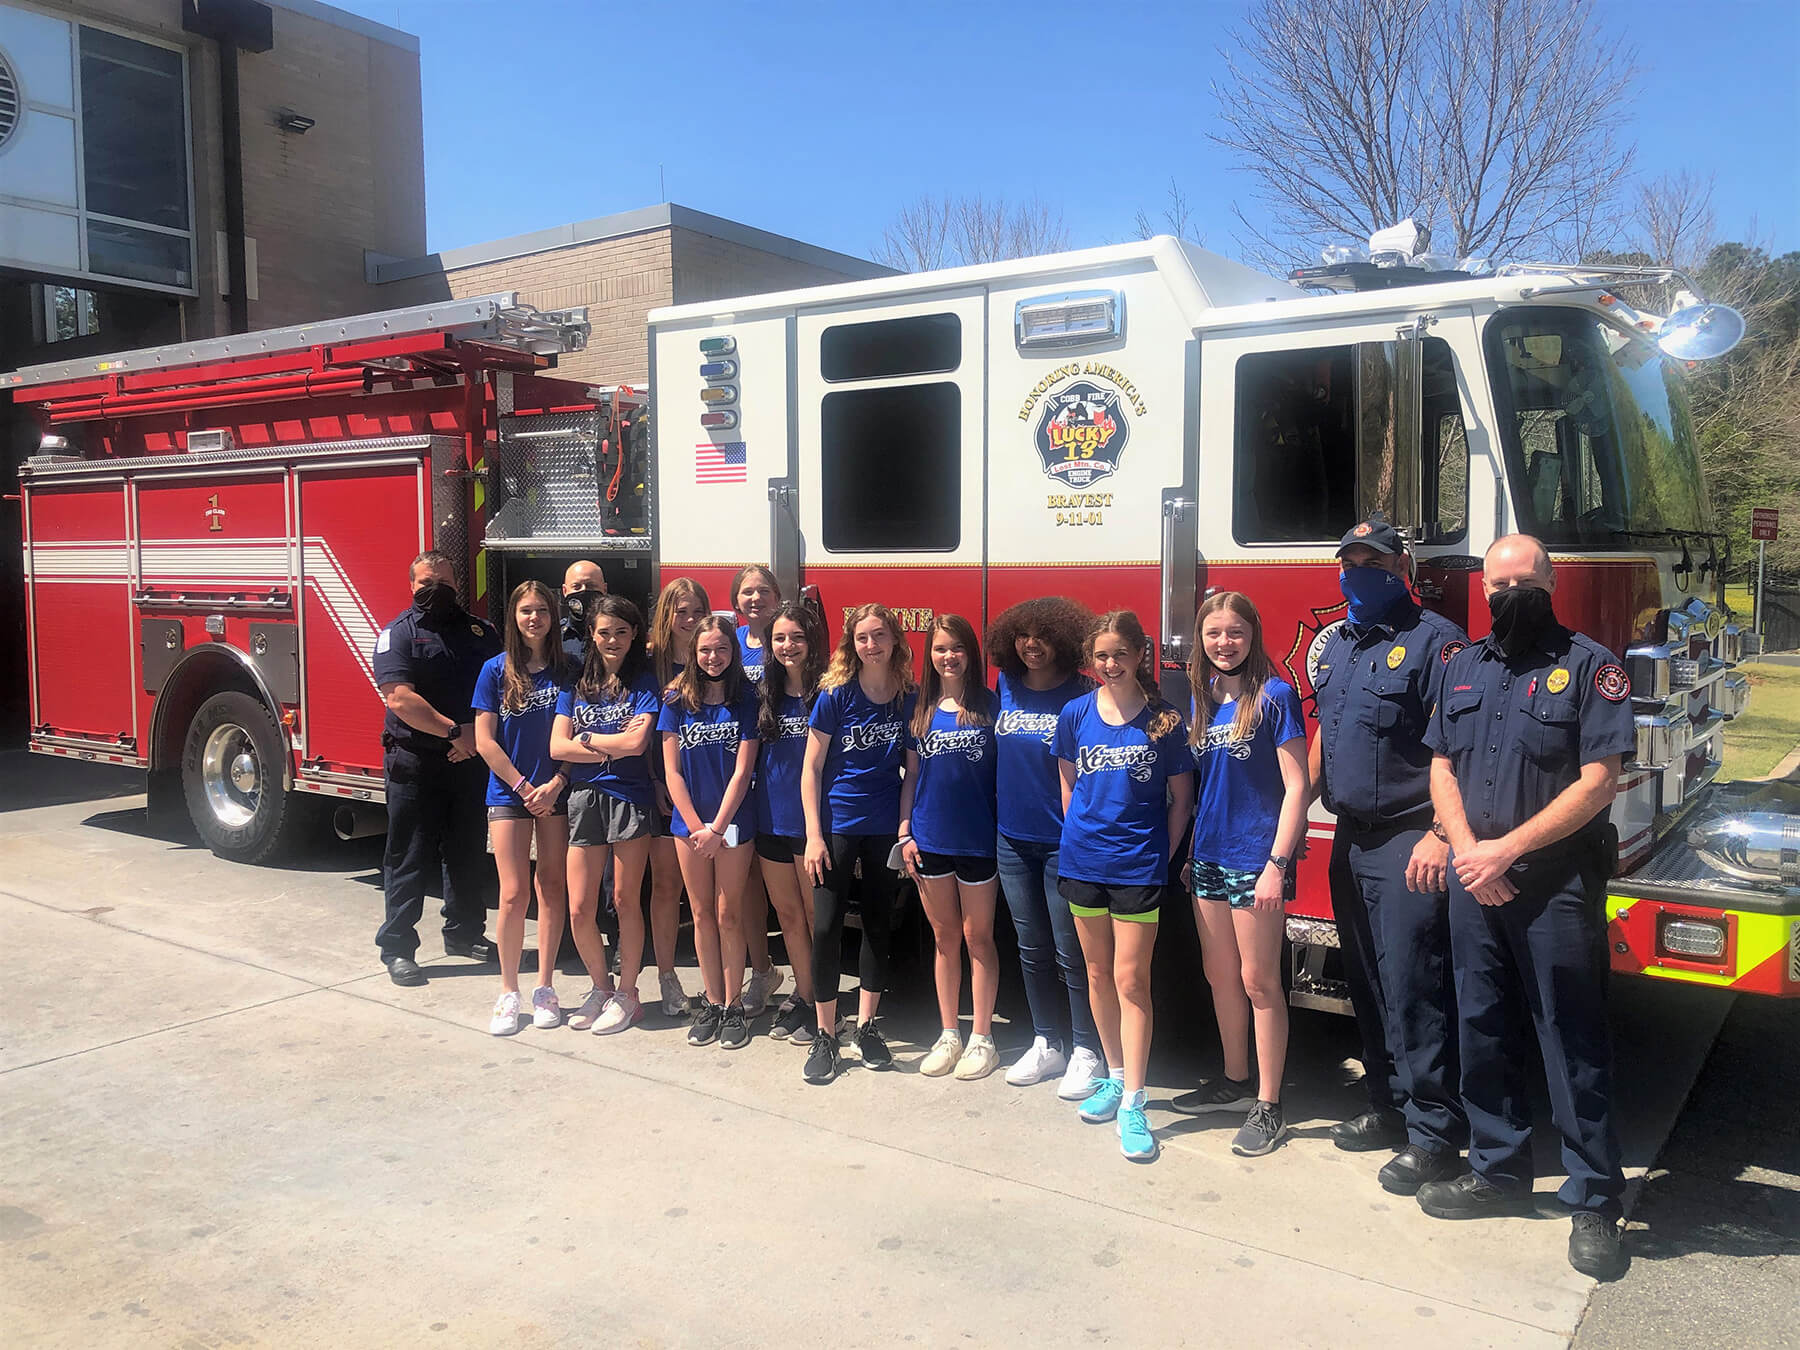 West Cobb Extreme 07 Softball Team Delivers Thanks and Gift Baskets to Local Firehouses